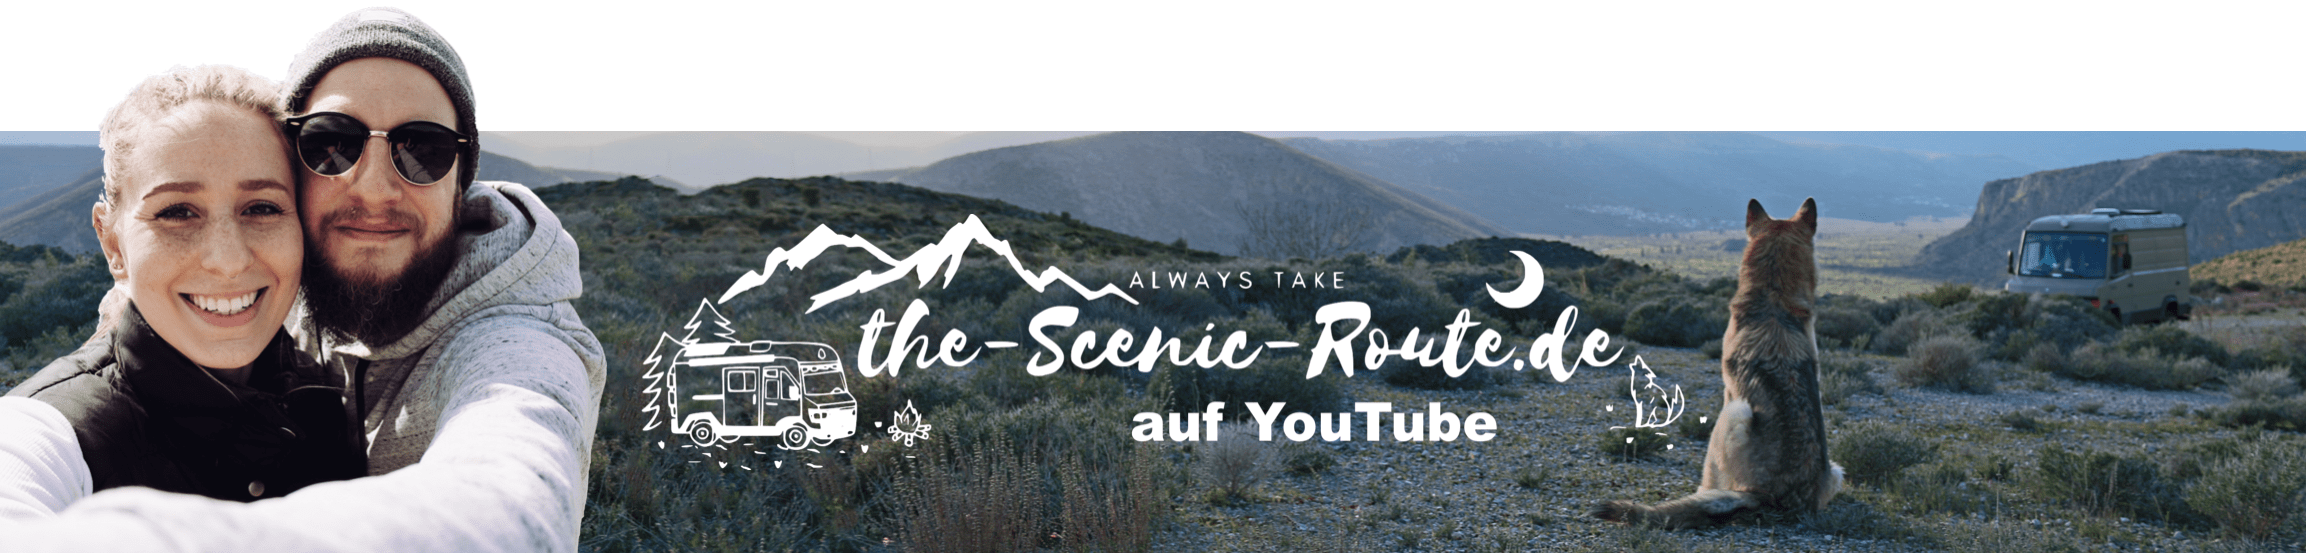 the-scenic-route.de_YouTube Header